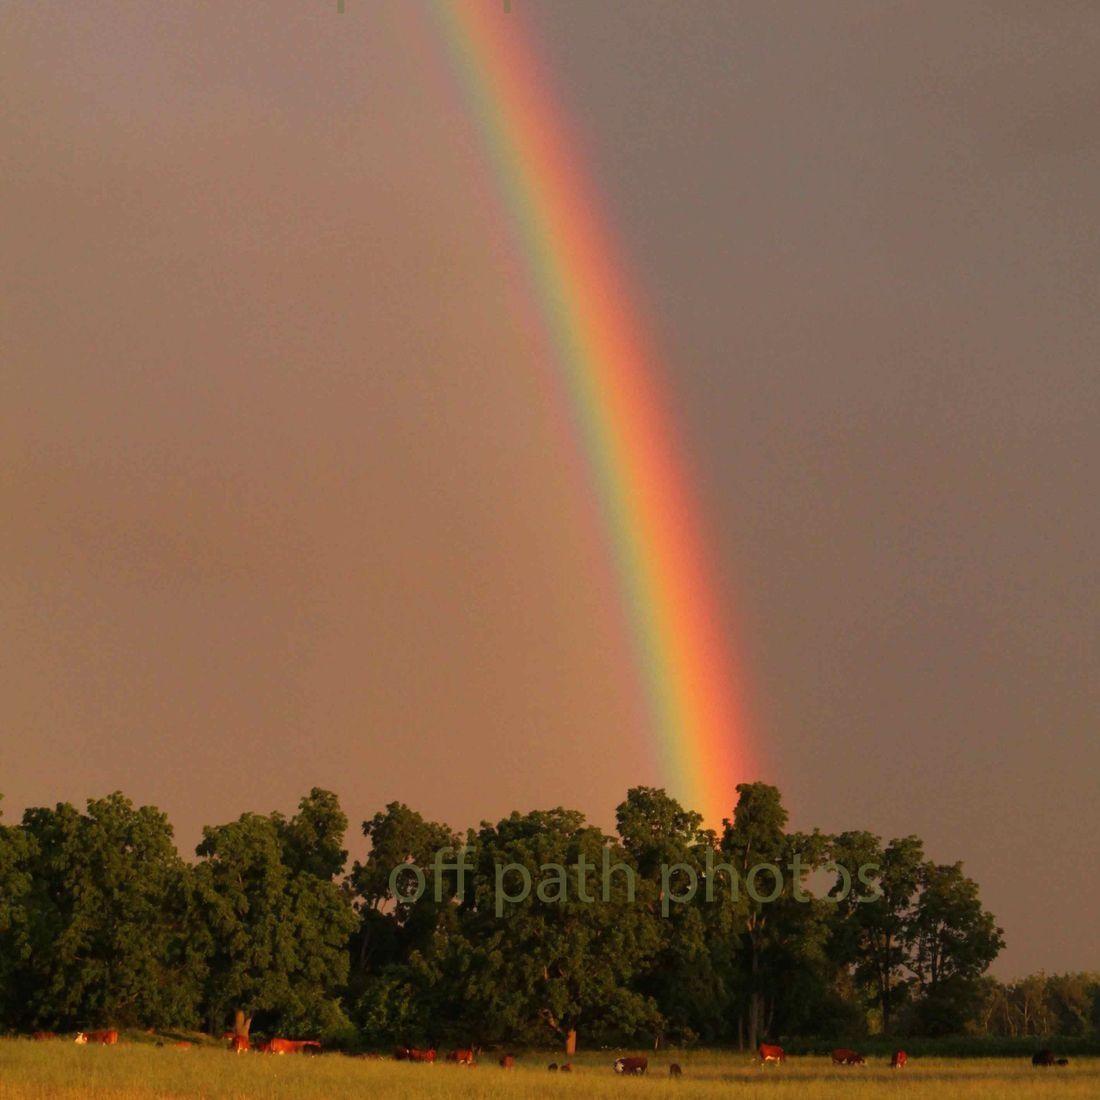 photography, rainbow, cows, field, nature, beautiful, country, light, lucky, blessed